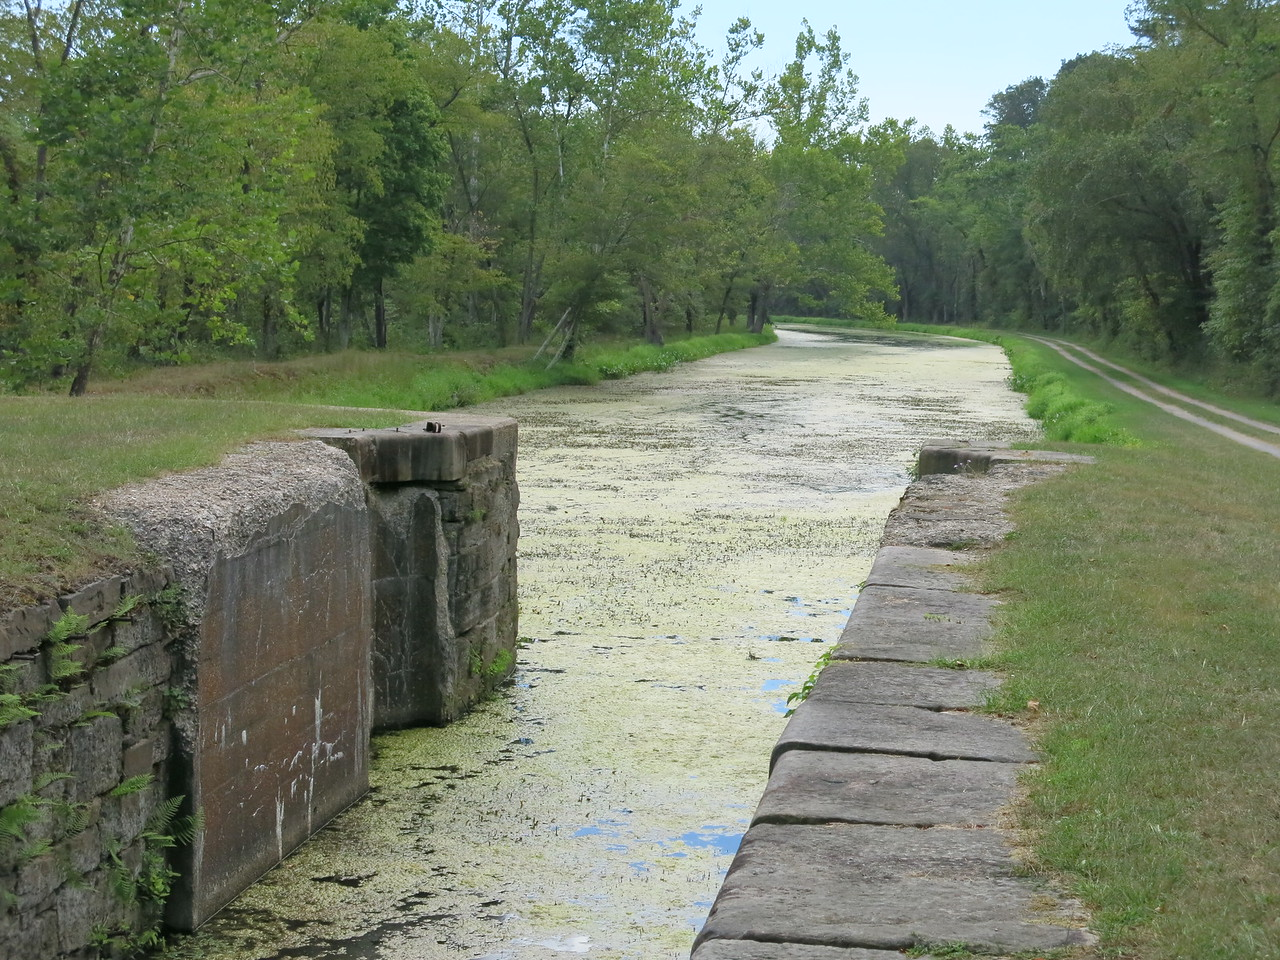 Downstream view from Lock 71 at MP 167